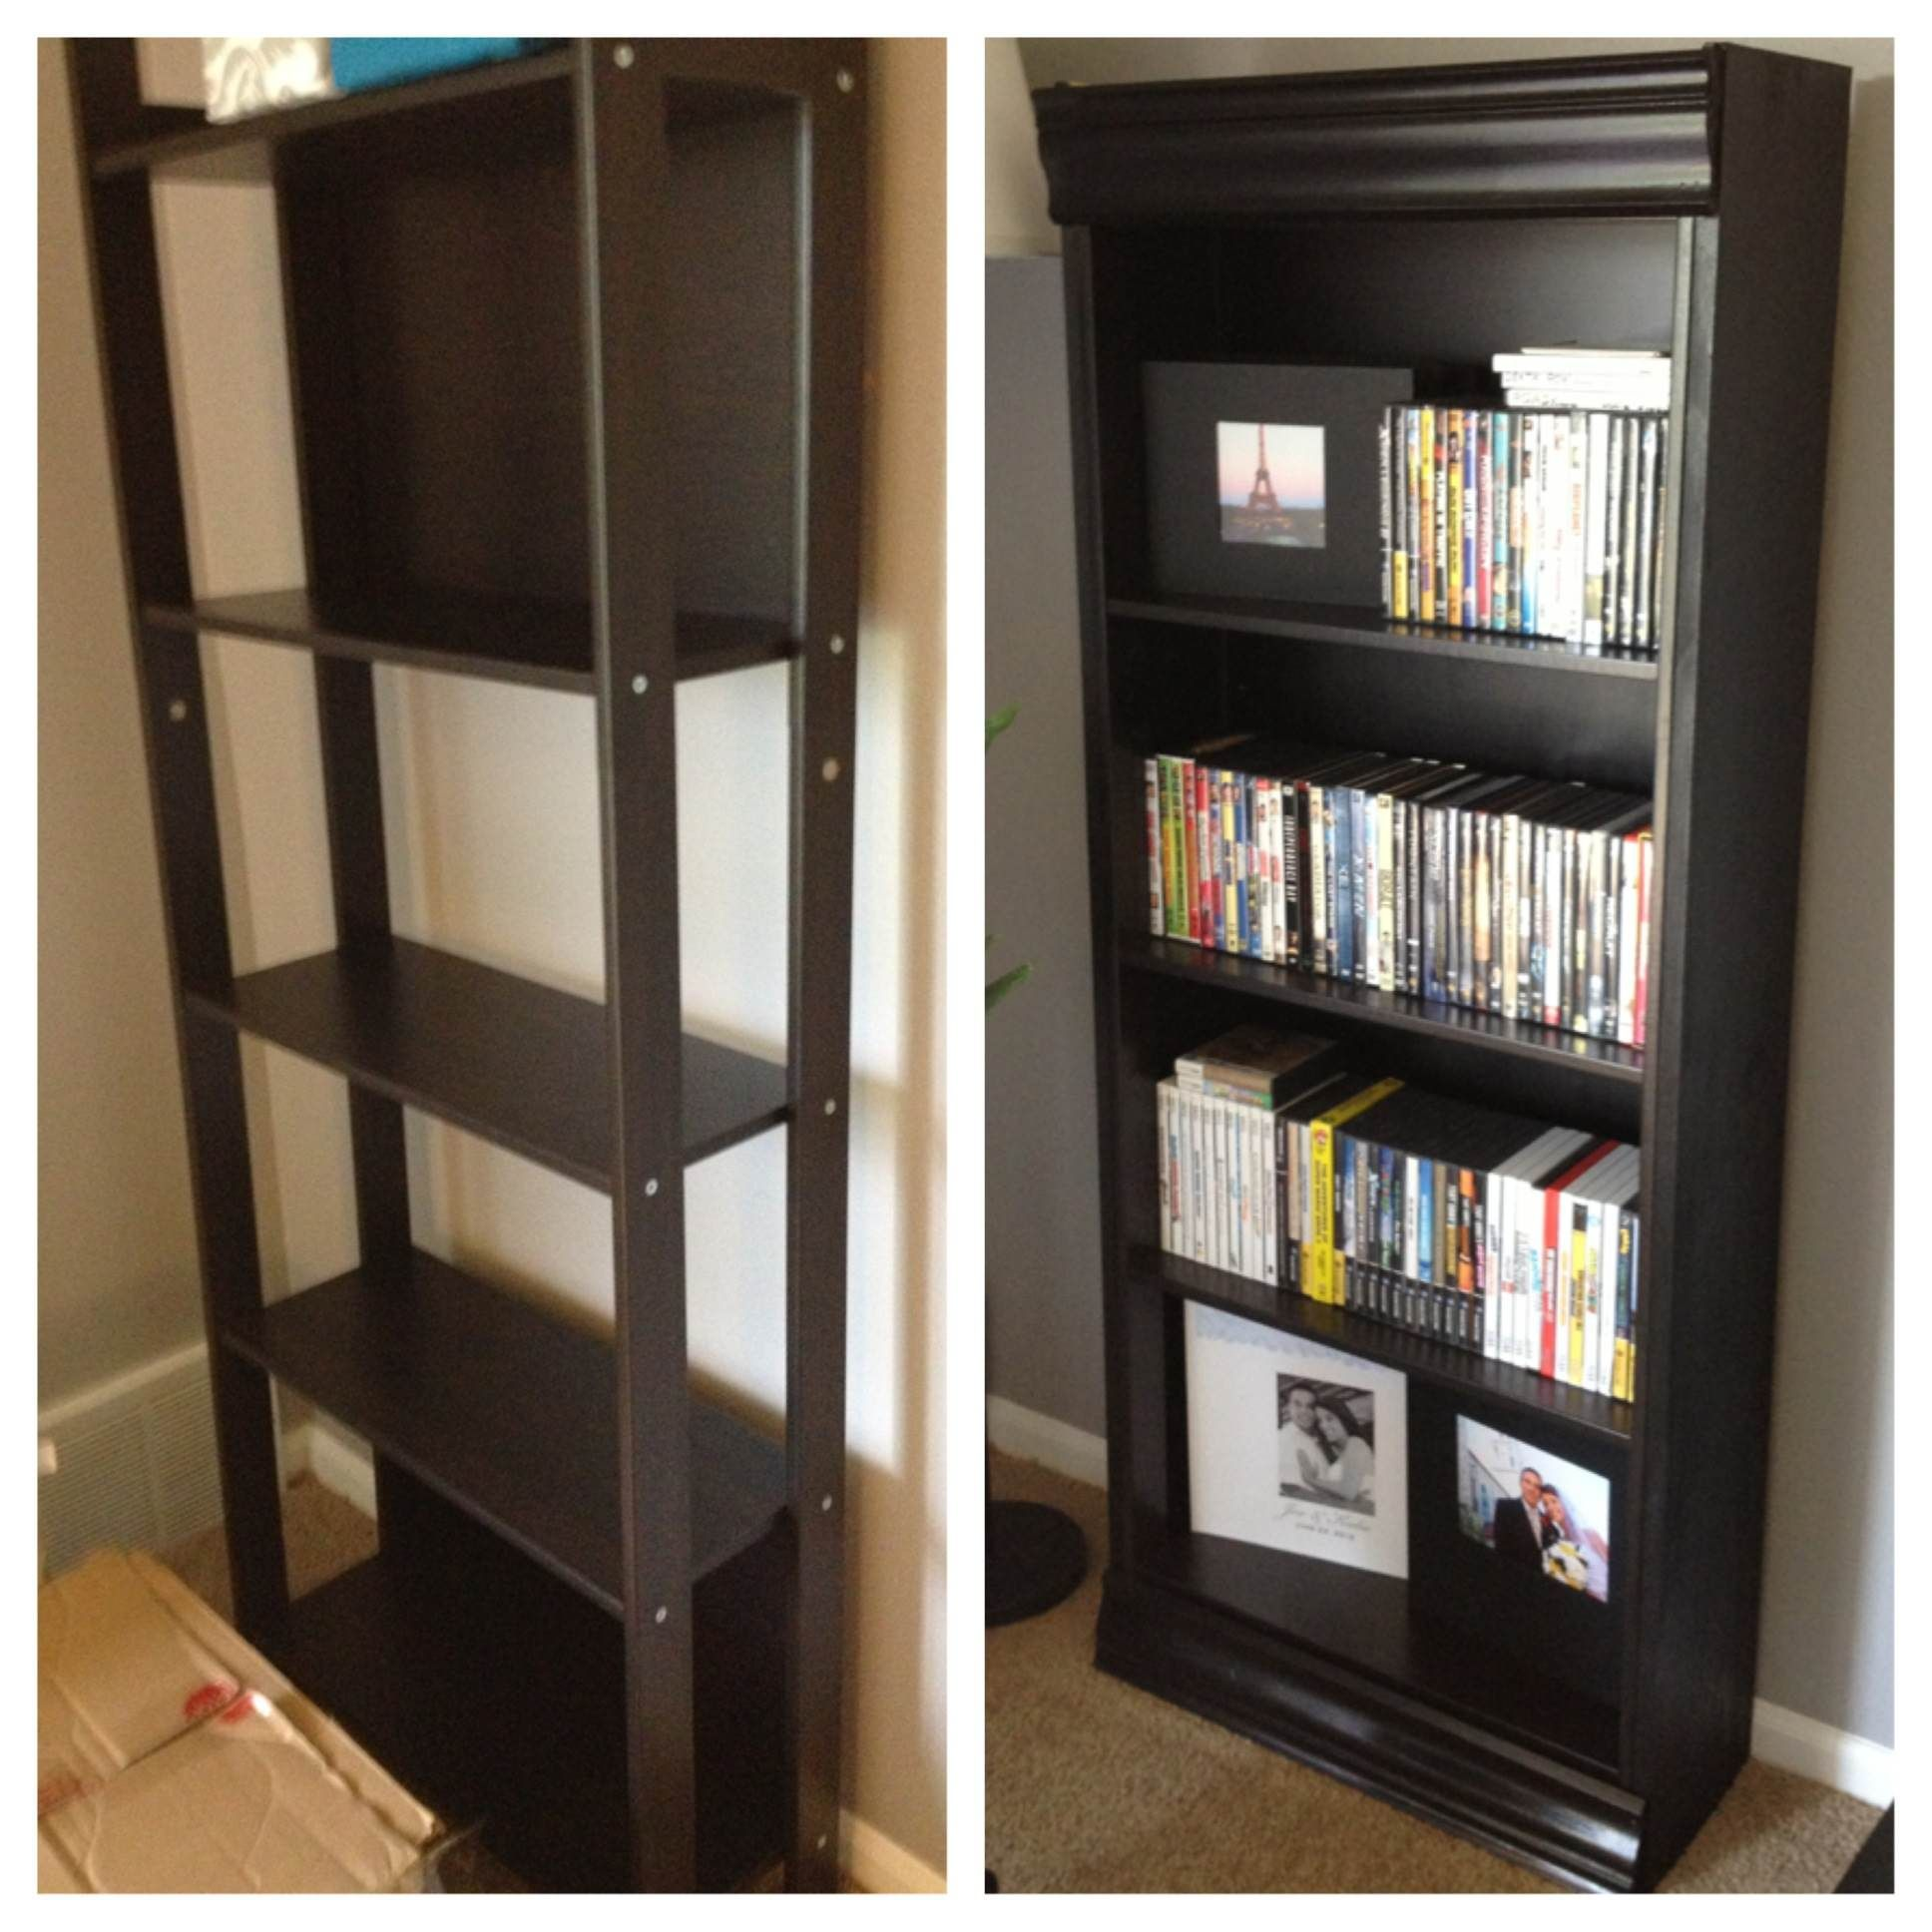 Ikea Hack I Started With The Laiva Bookcase ($25), Added